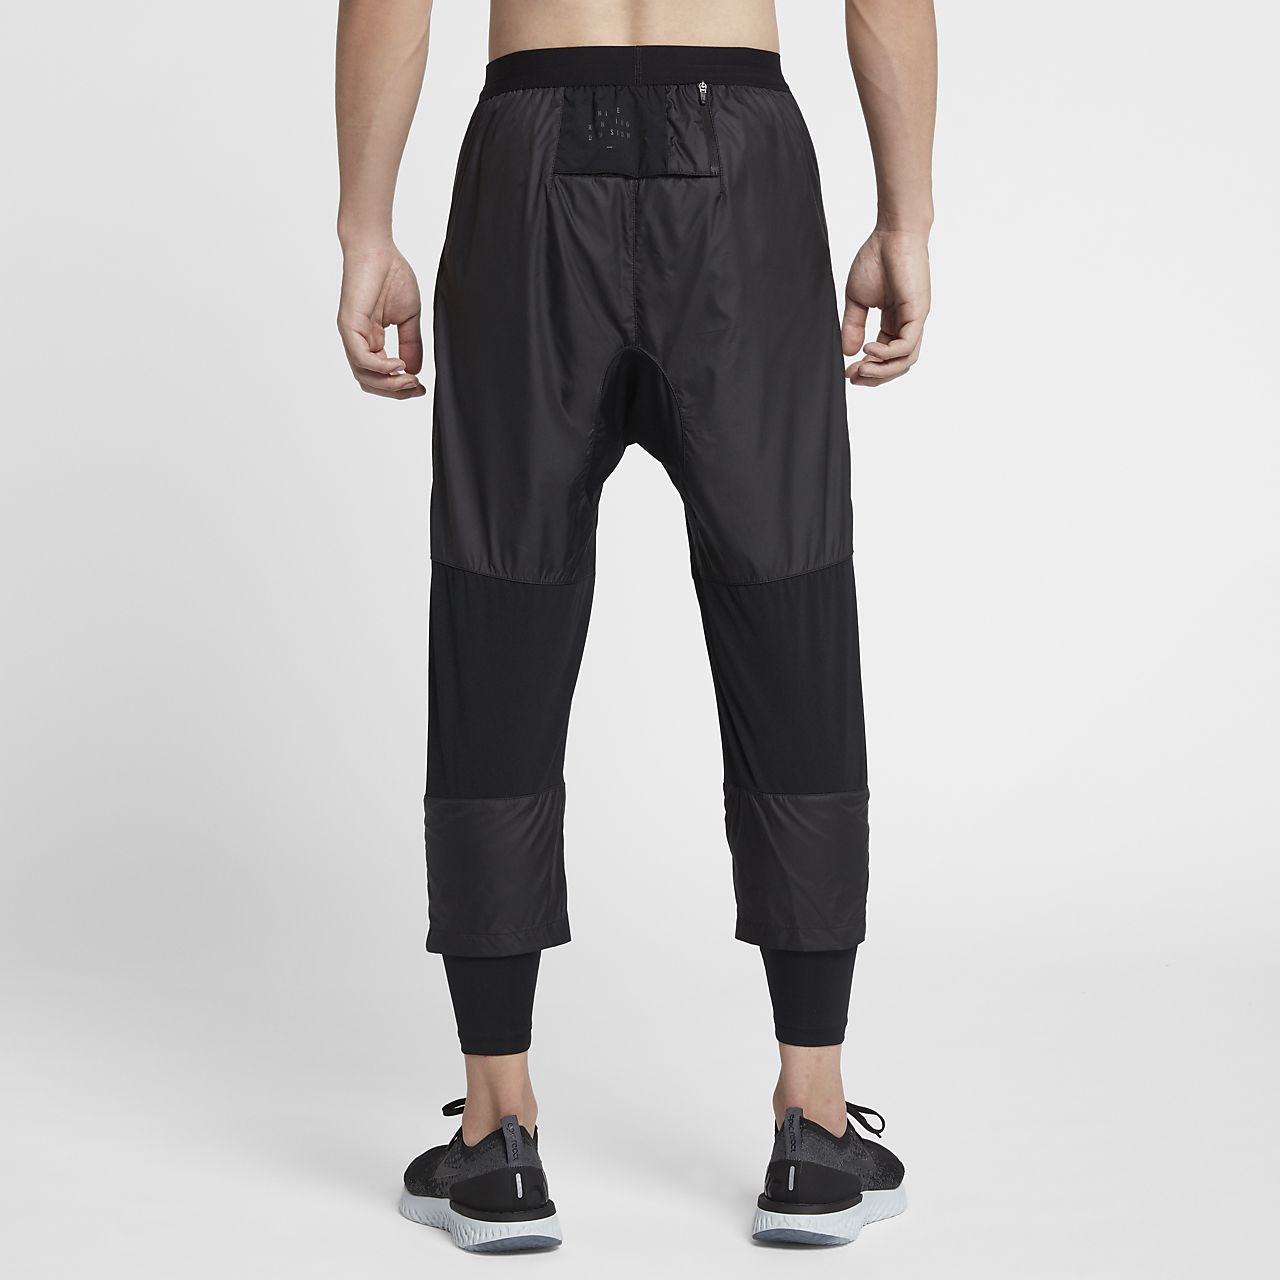 6bfb2b4f854d Nike Run Division Tech Men s Running Trousers. Nike.com VN